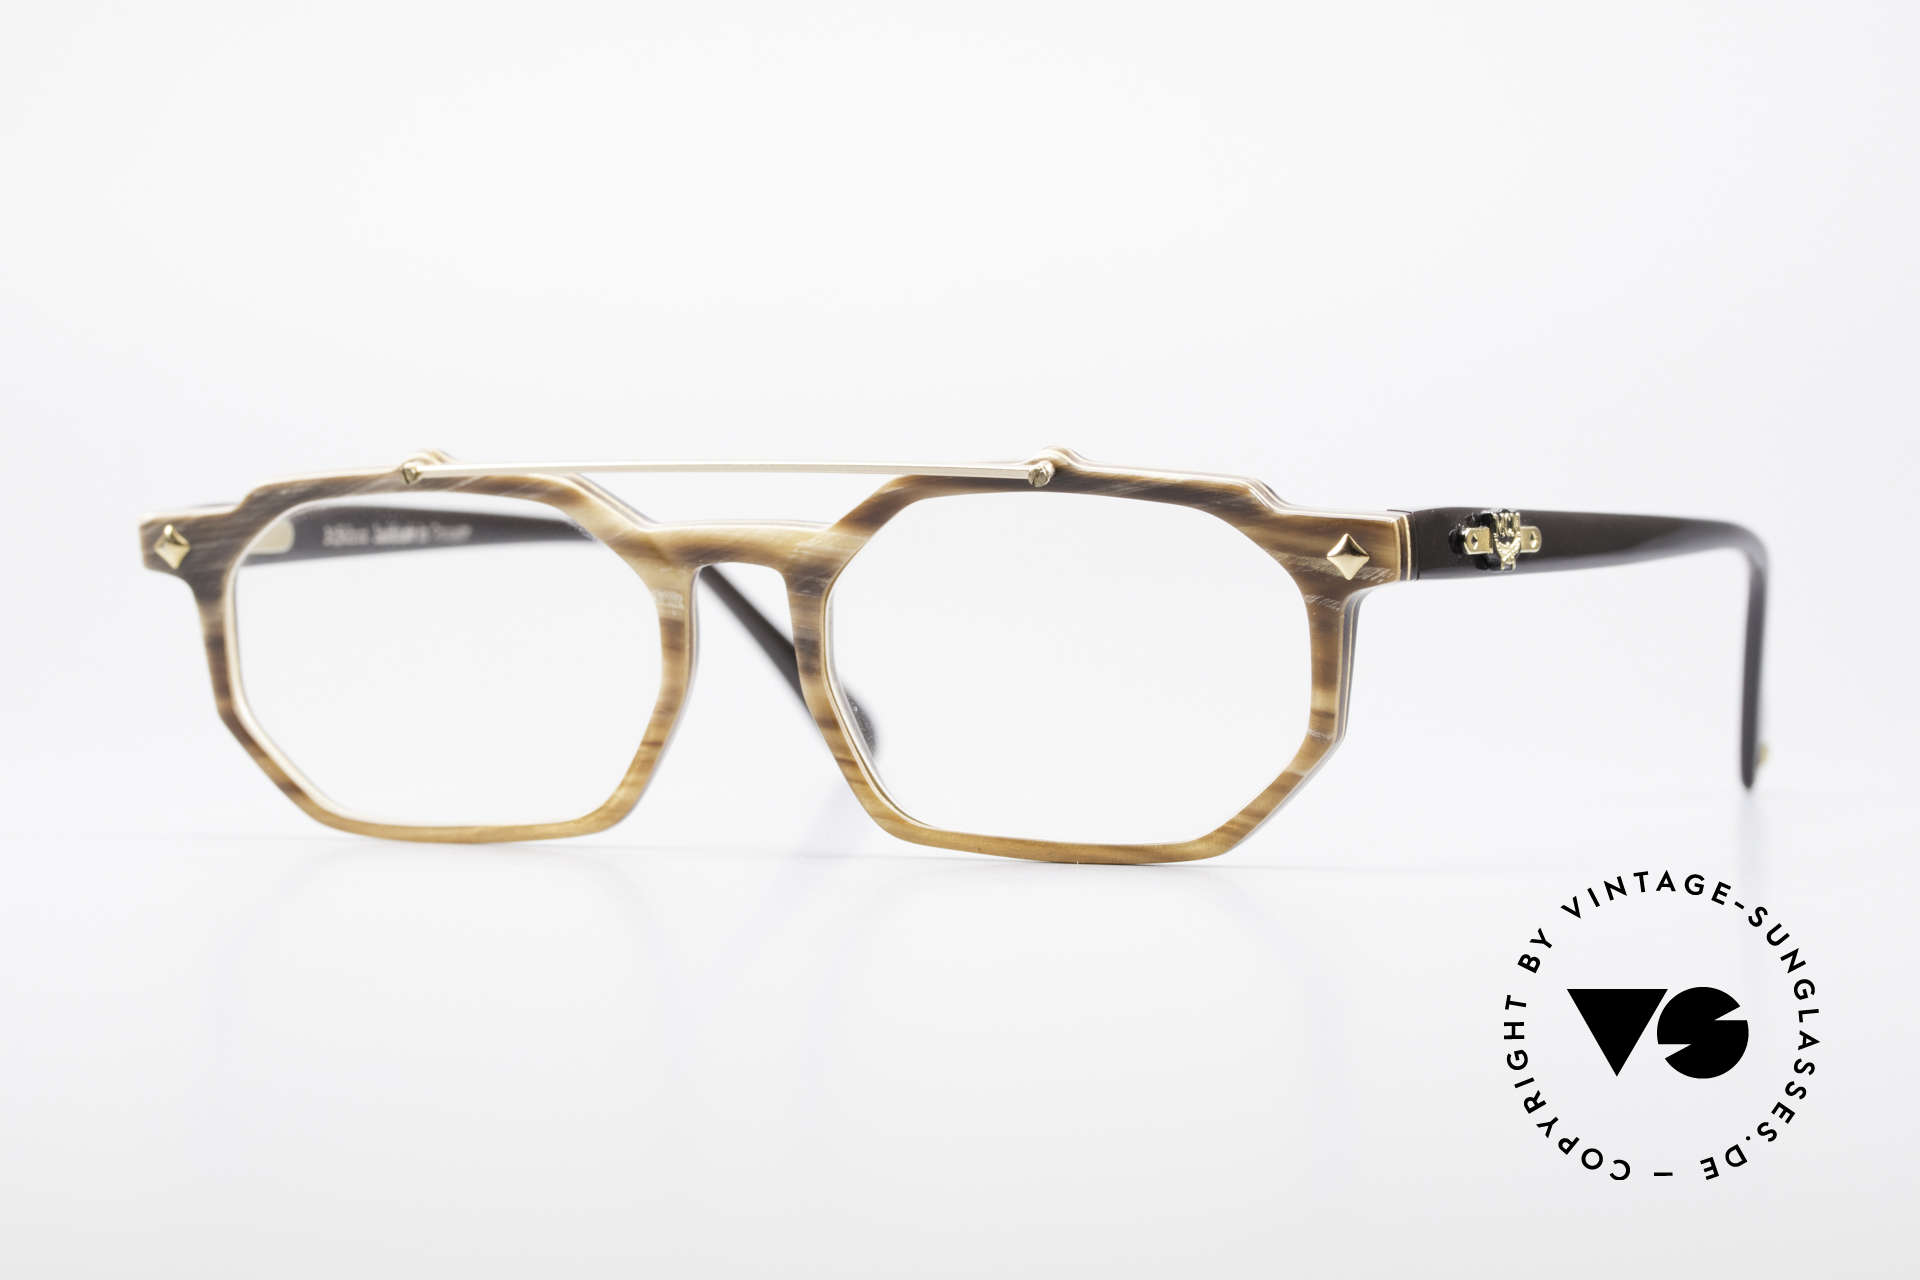 MCM München 301 Buffalo Horn Vintage Frame, luxury horn eyeglasses by MCM from the 1980's, Made for Men and Women